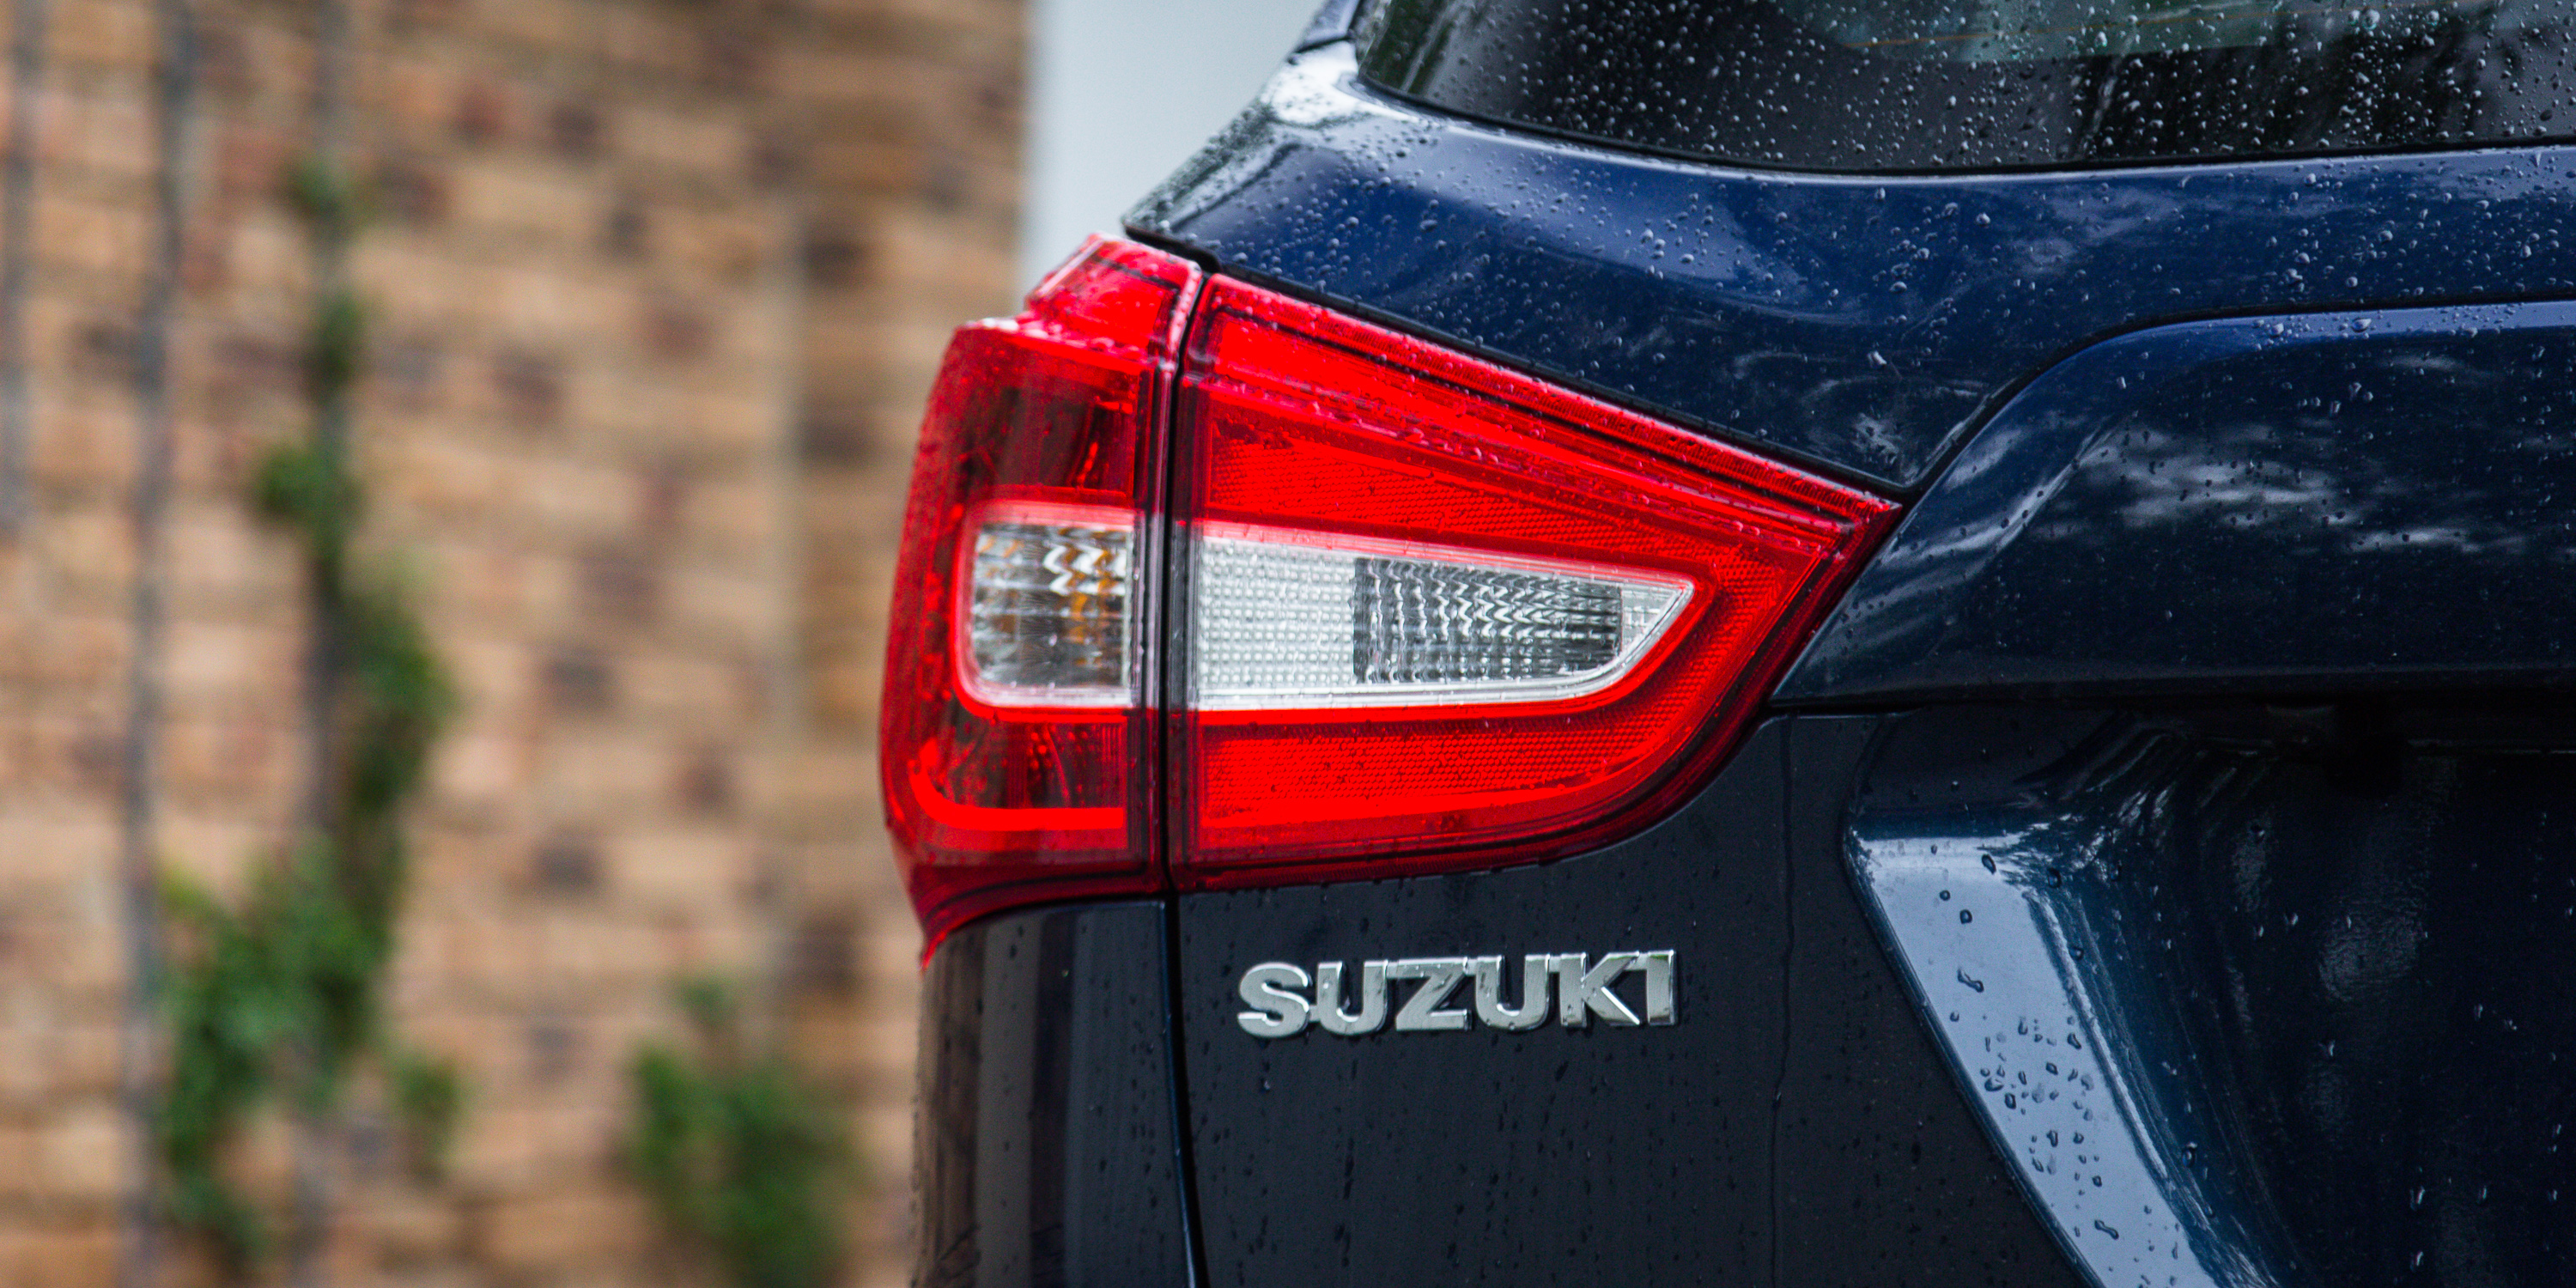 Suzuki S-Cross photo 173183